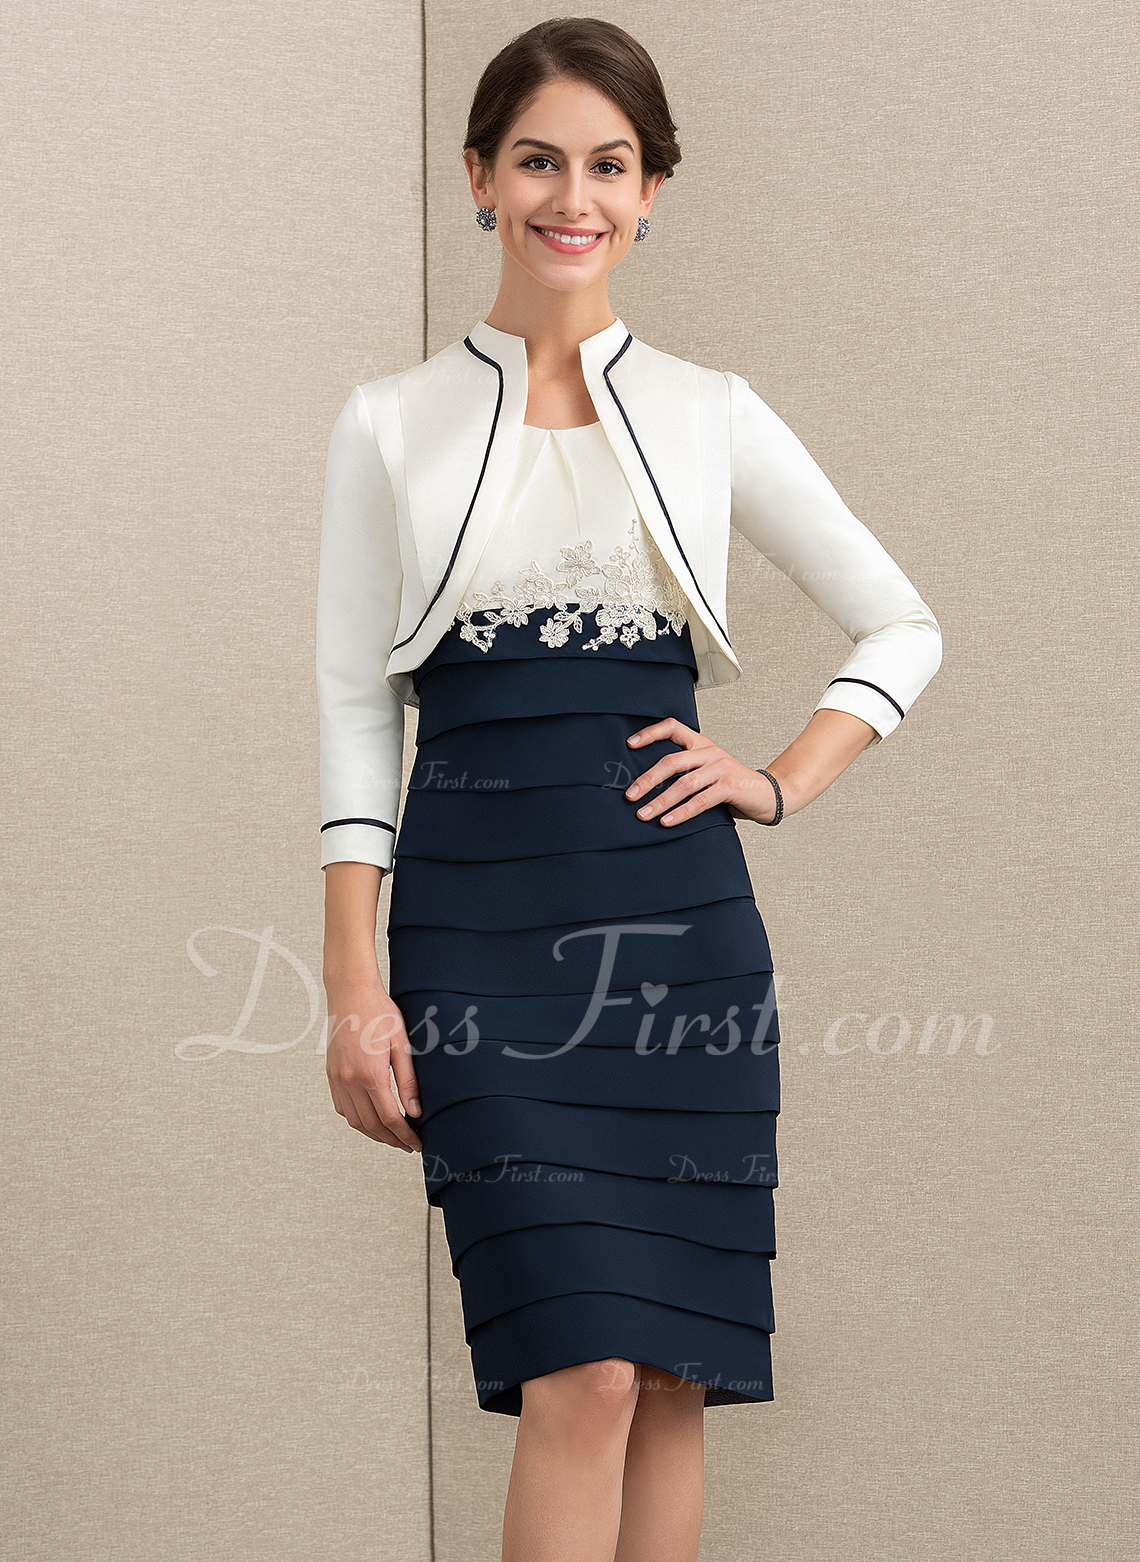 Sheath/Column Scoop Neck Knee-Length Chiffon Mother of the Bride Dress With Appliques Lace